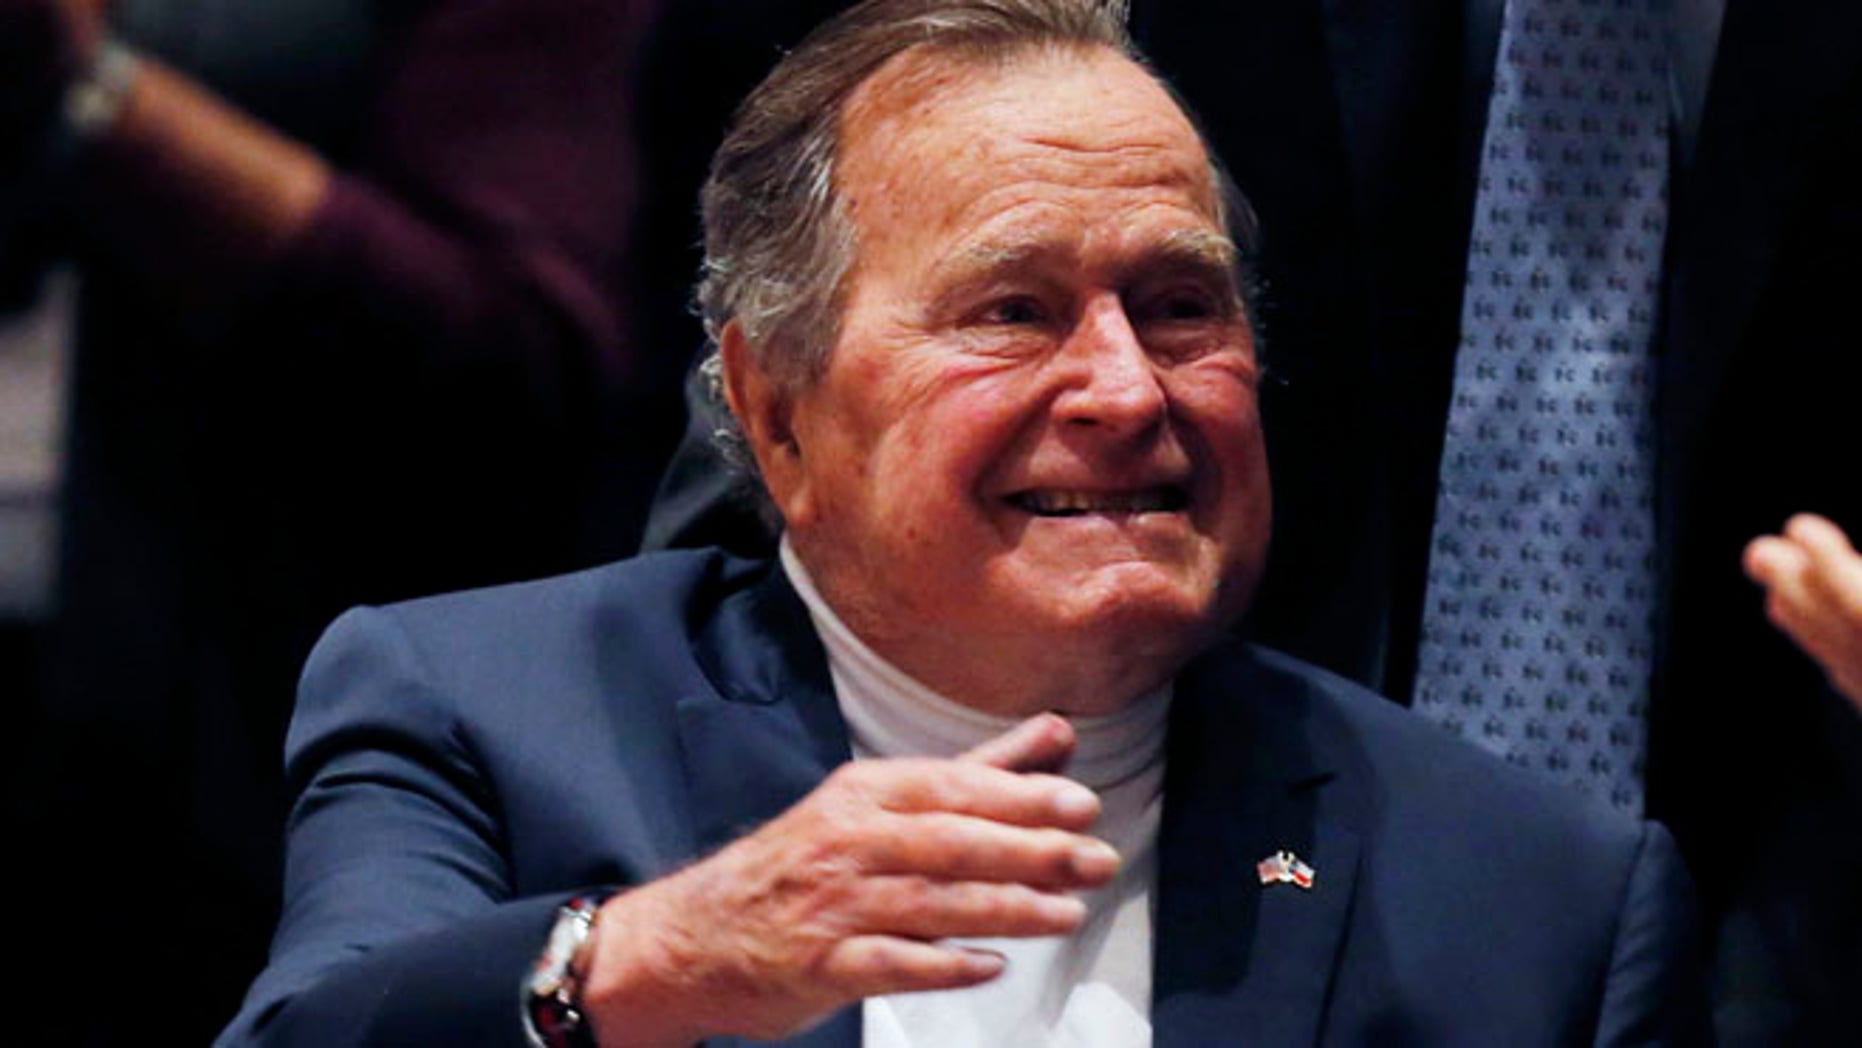 """Nov. 11, 2014: Former United States President George H. W. Bush is brought into the auditorium where his son Former United States President George W. Bush speaks about his new book titled """"41: A Portrait of My Father"""" at the George Bush Presidential Library Center in College Station."""